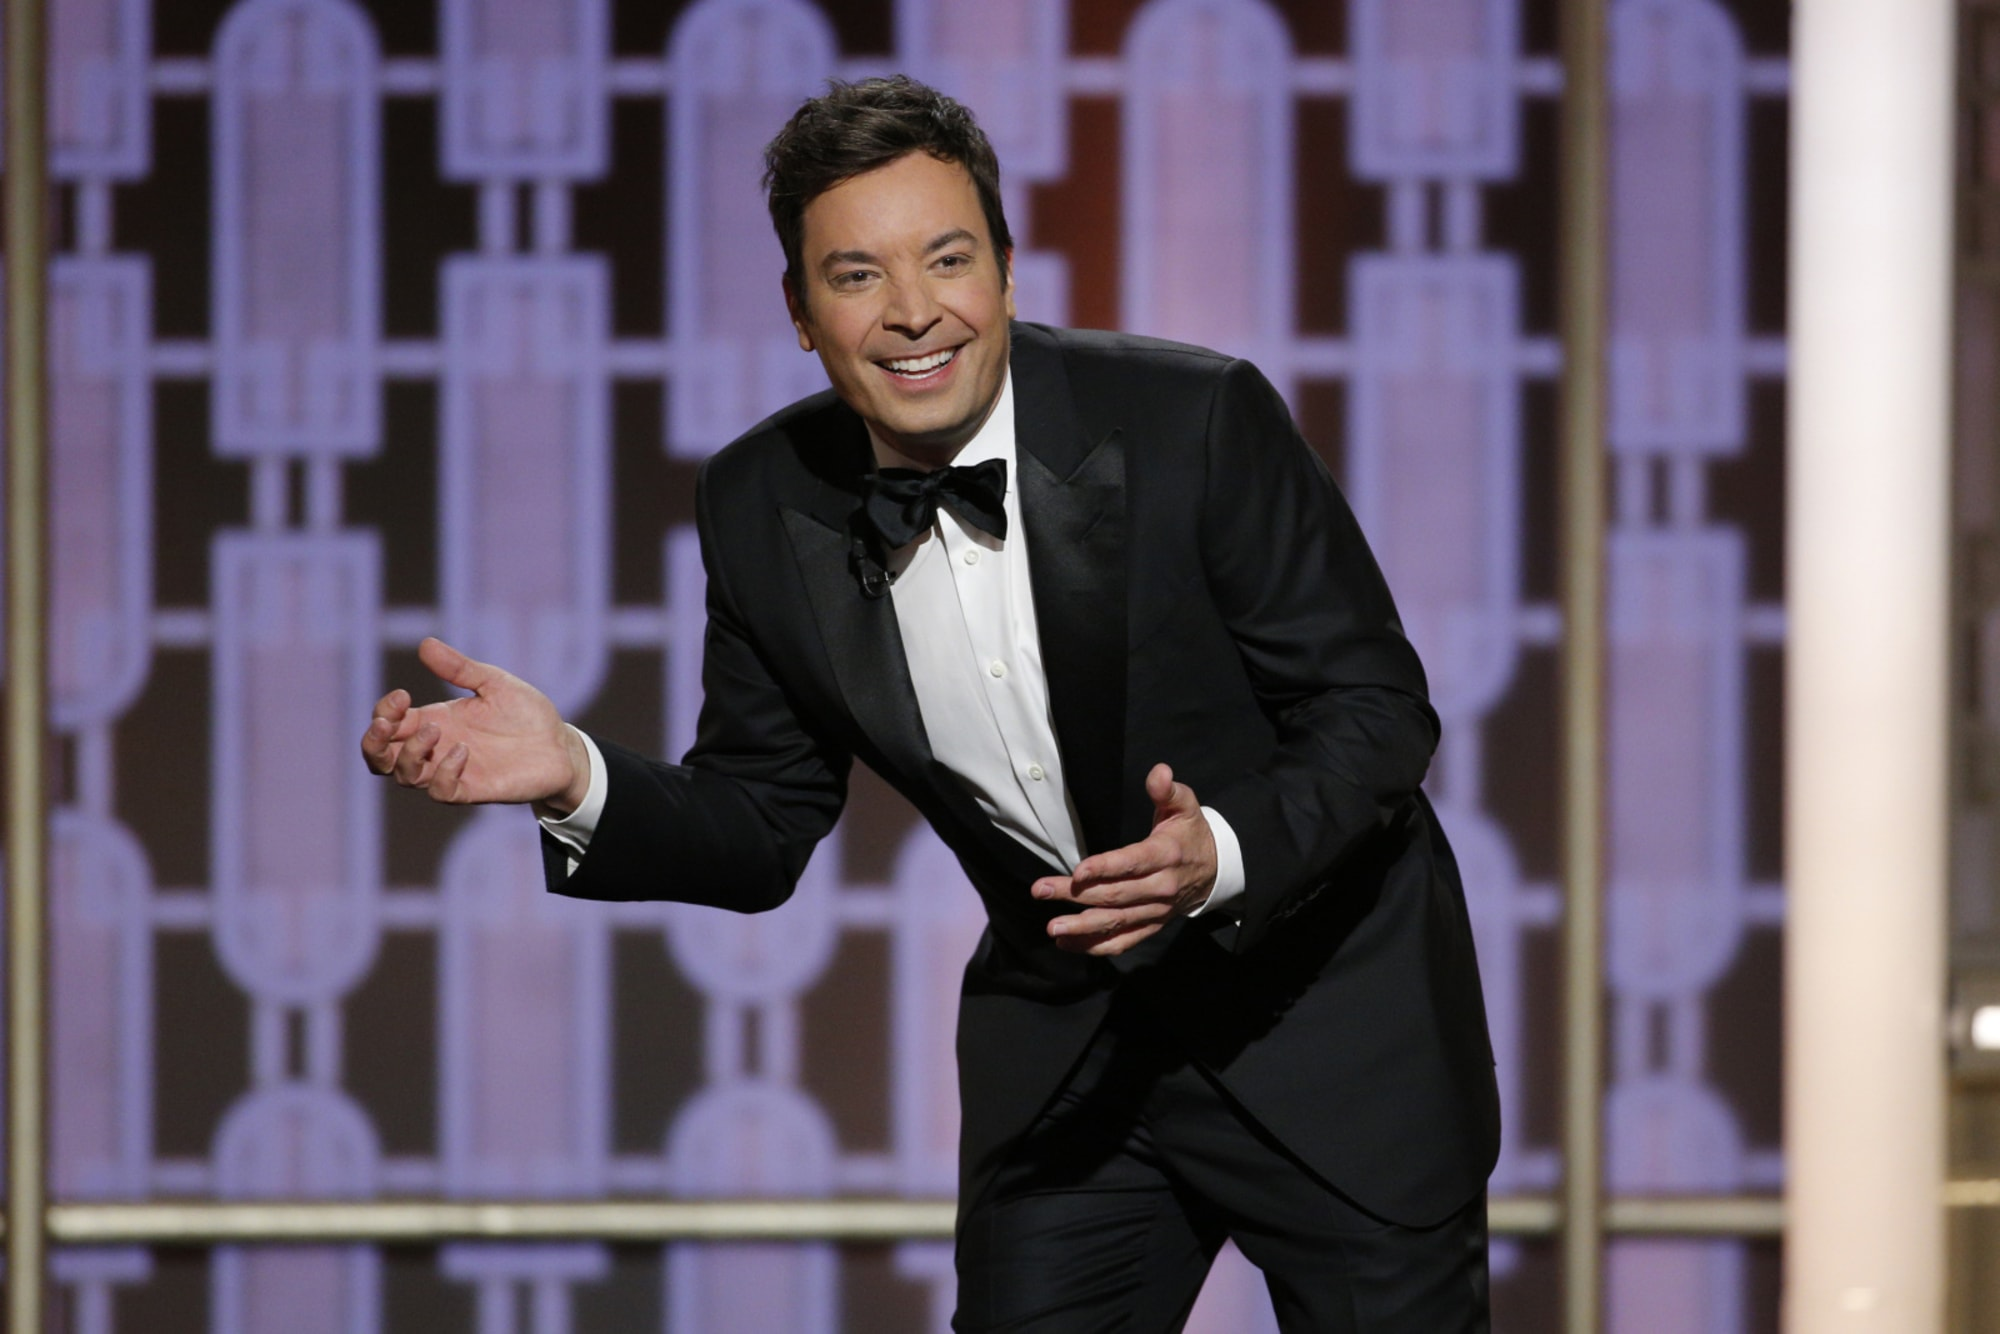 Is The Tonight Show Starring Jimmy Fallon new tonight, October 21?